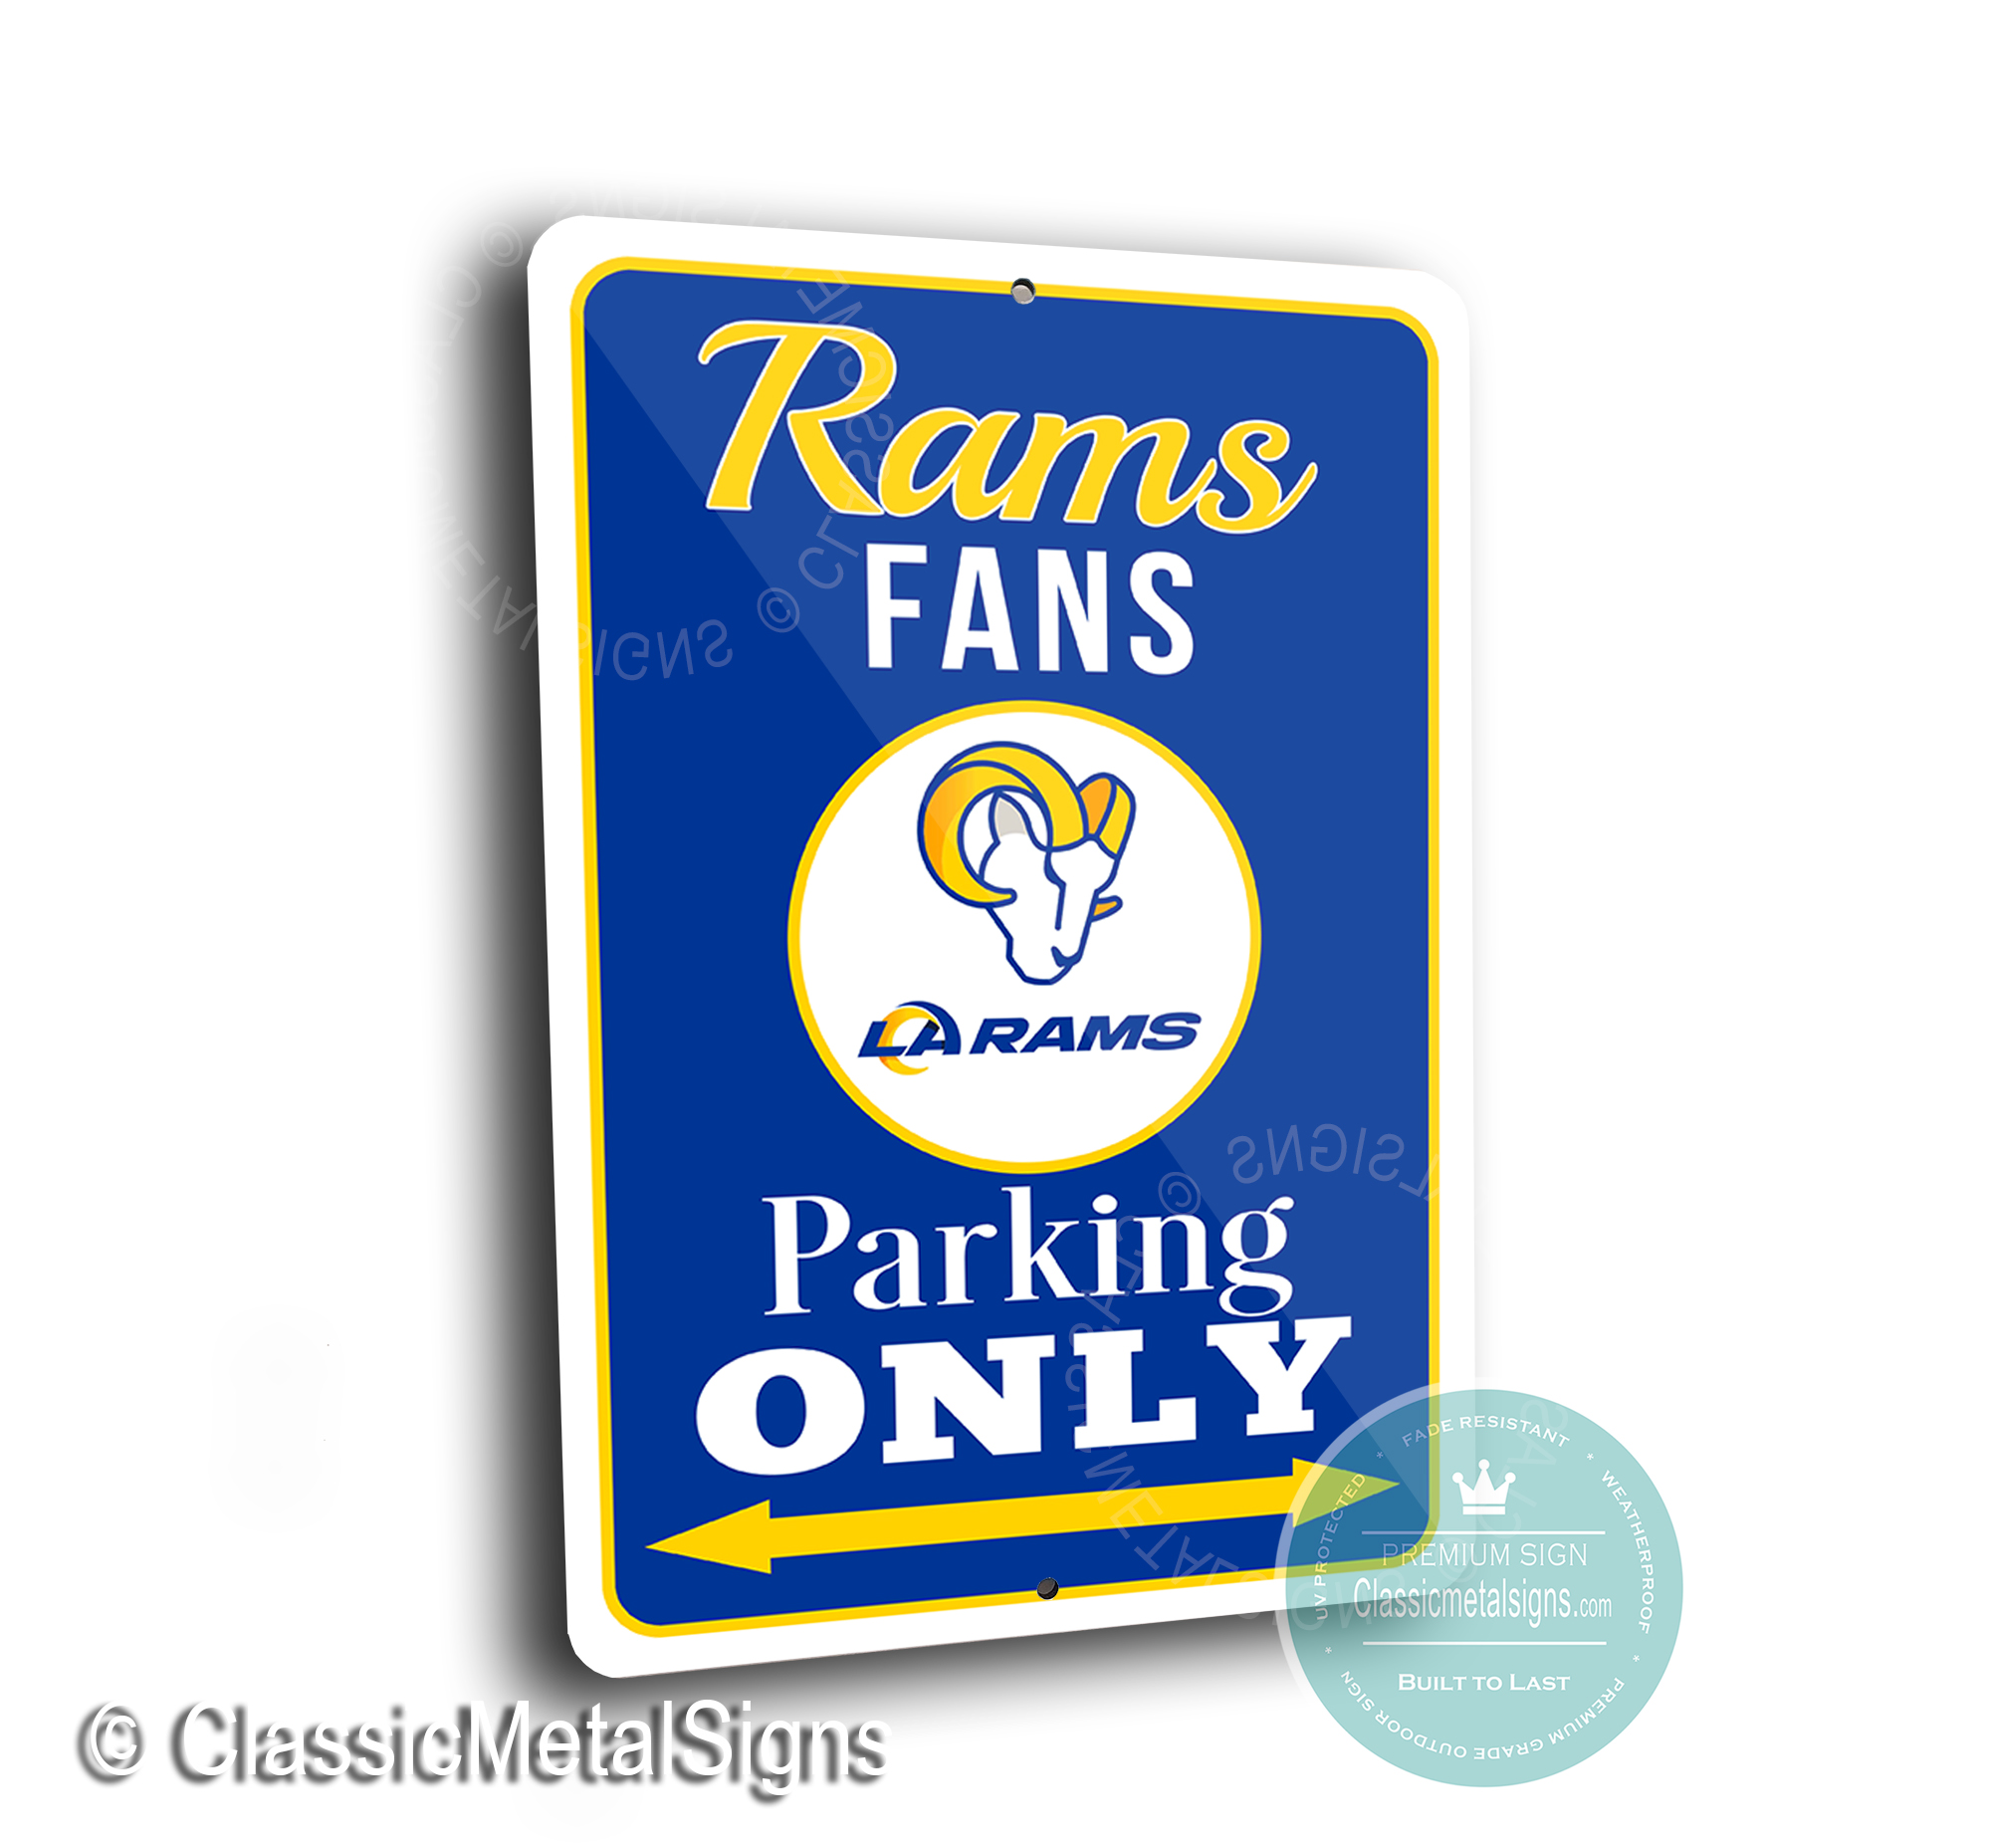 LA Rams Parking Only Signs